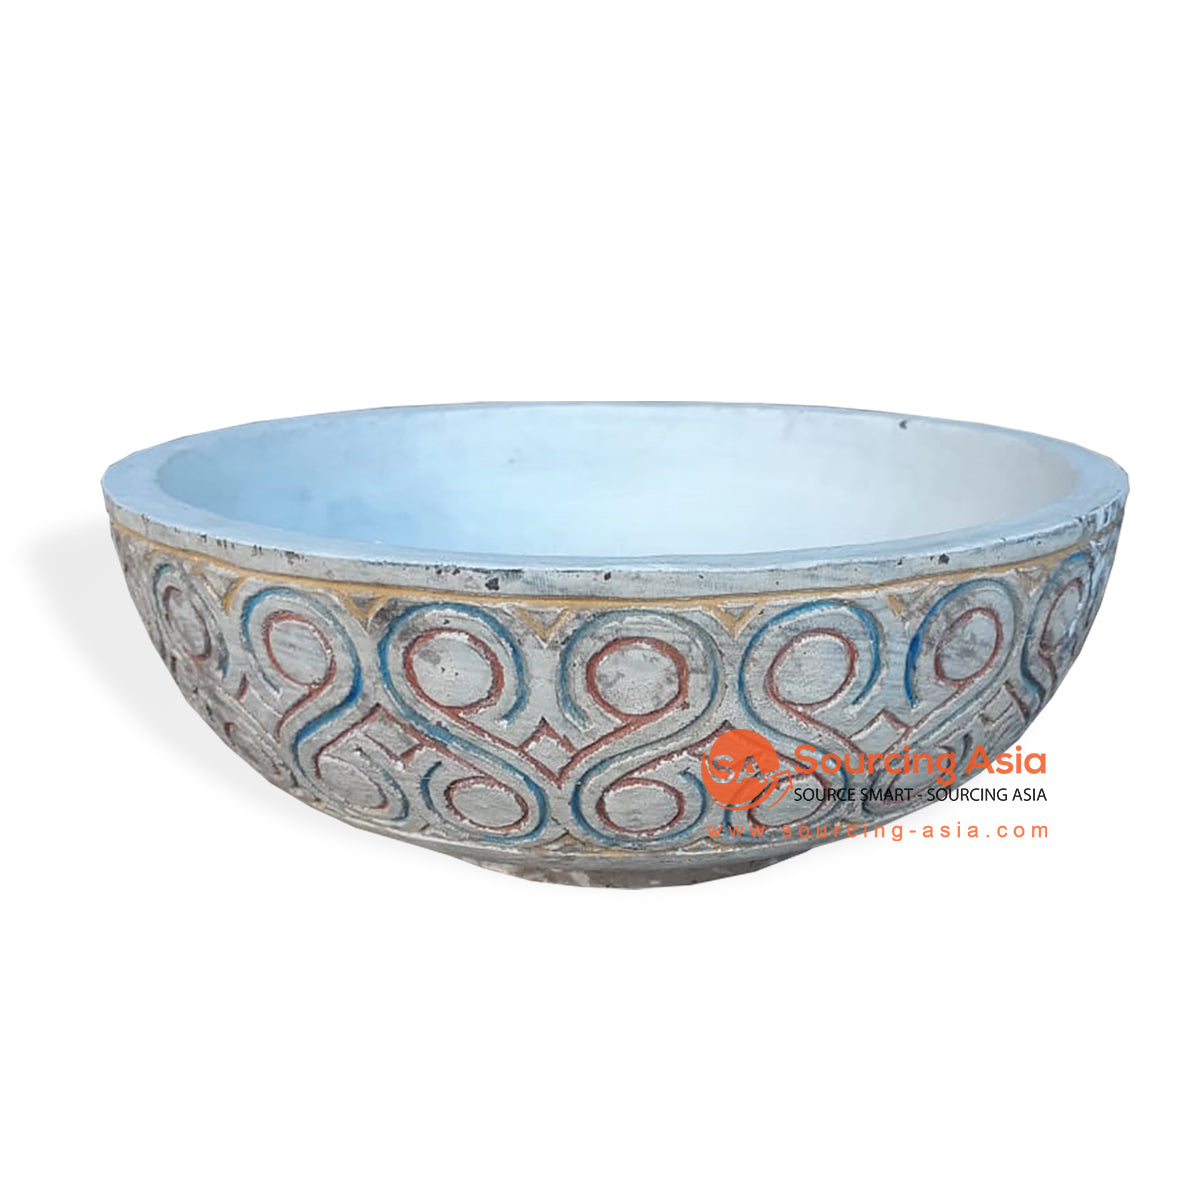 TKN043 CARVED ETHNIC TRIBAL STYLE BOWL